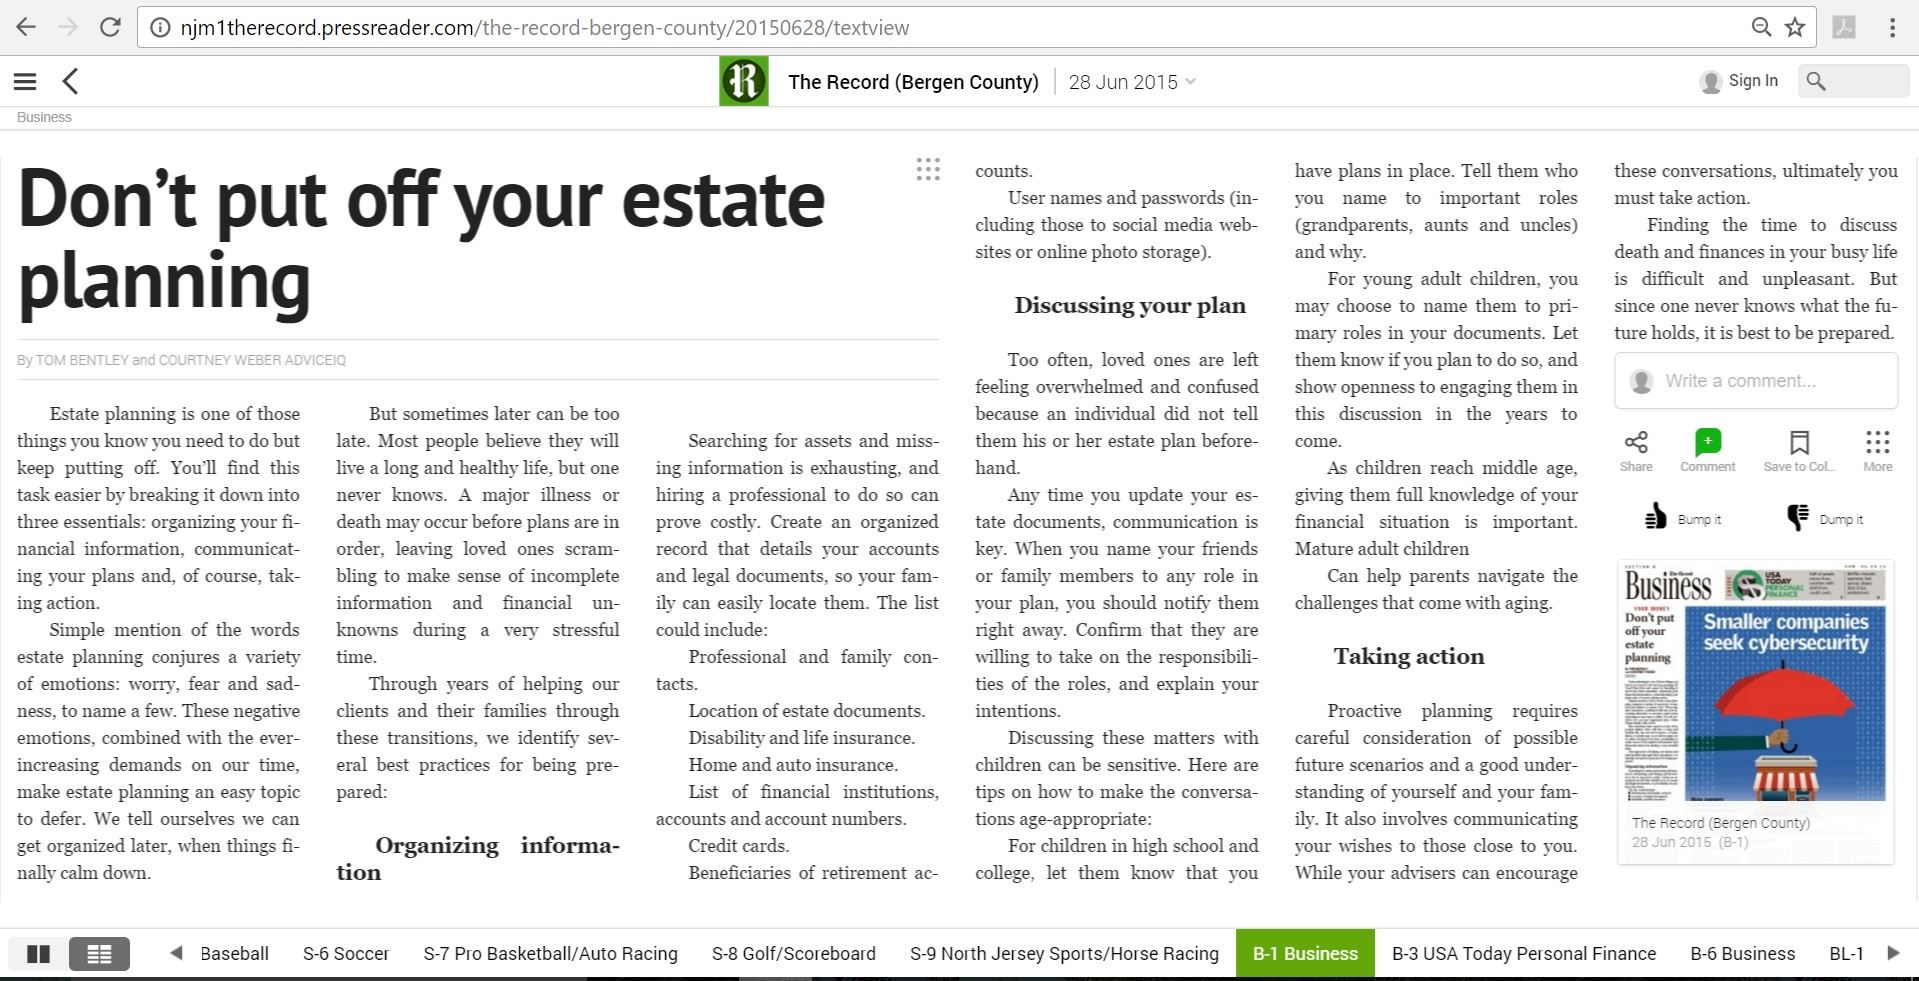 Don't put off your estate planning article by The Bergen Record